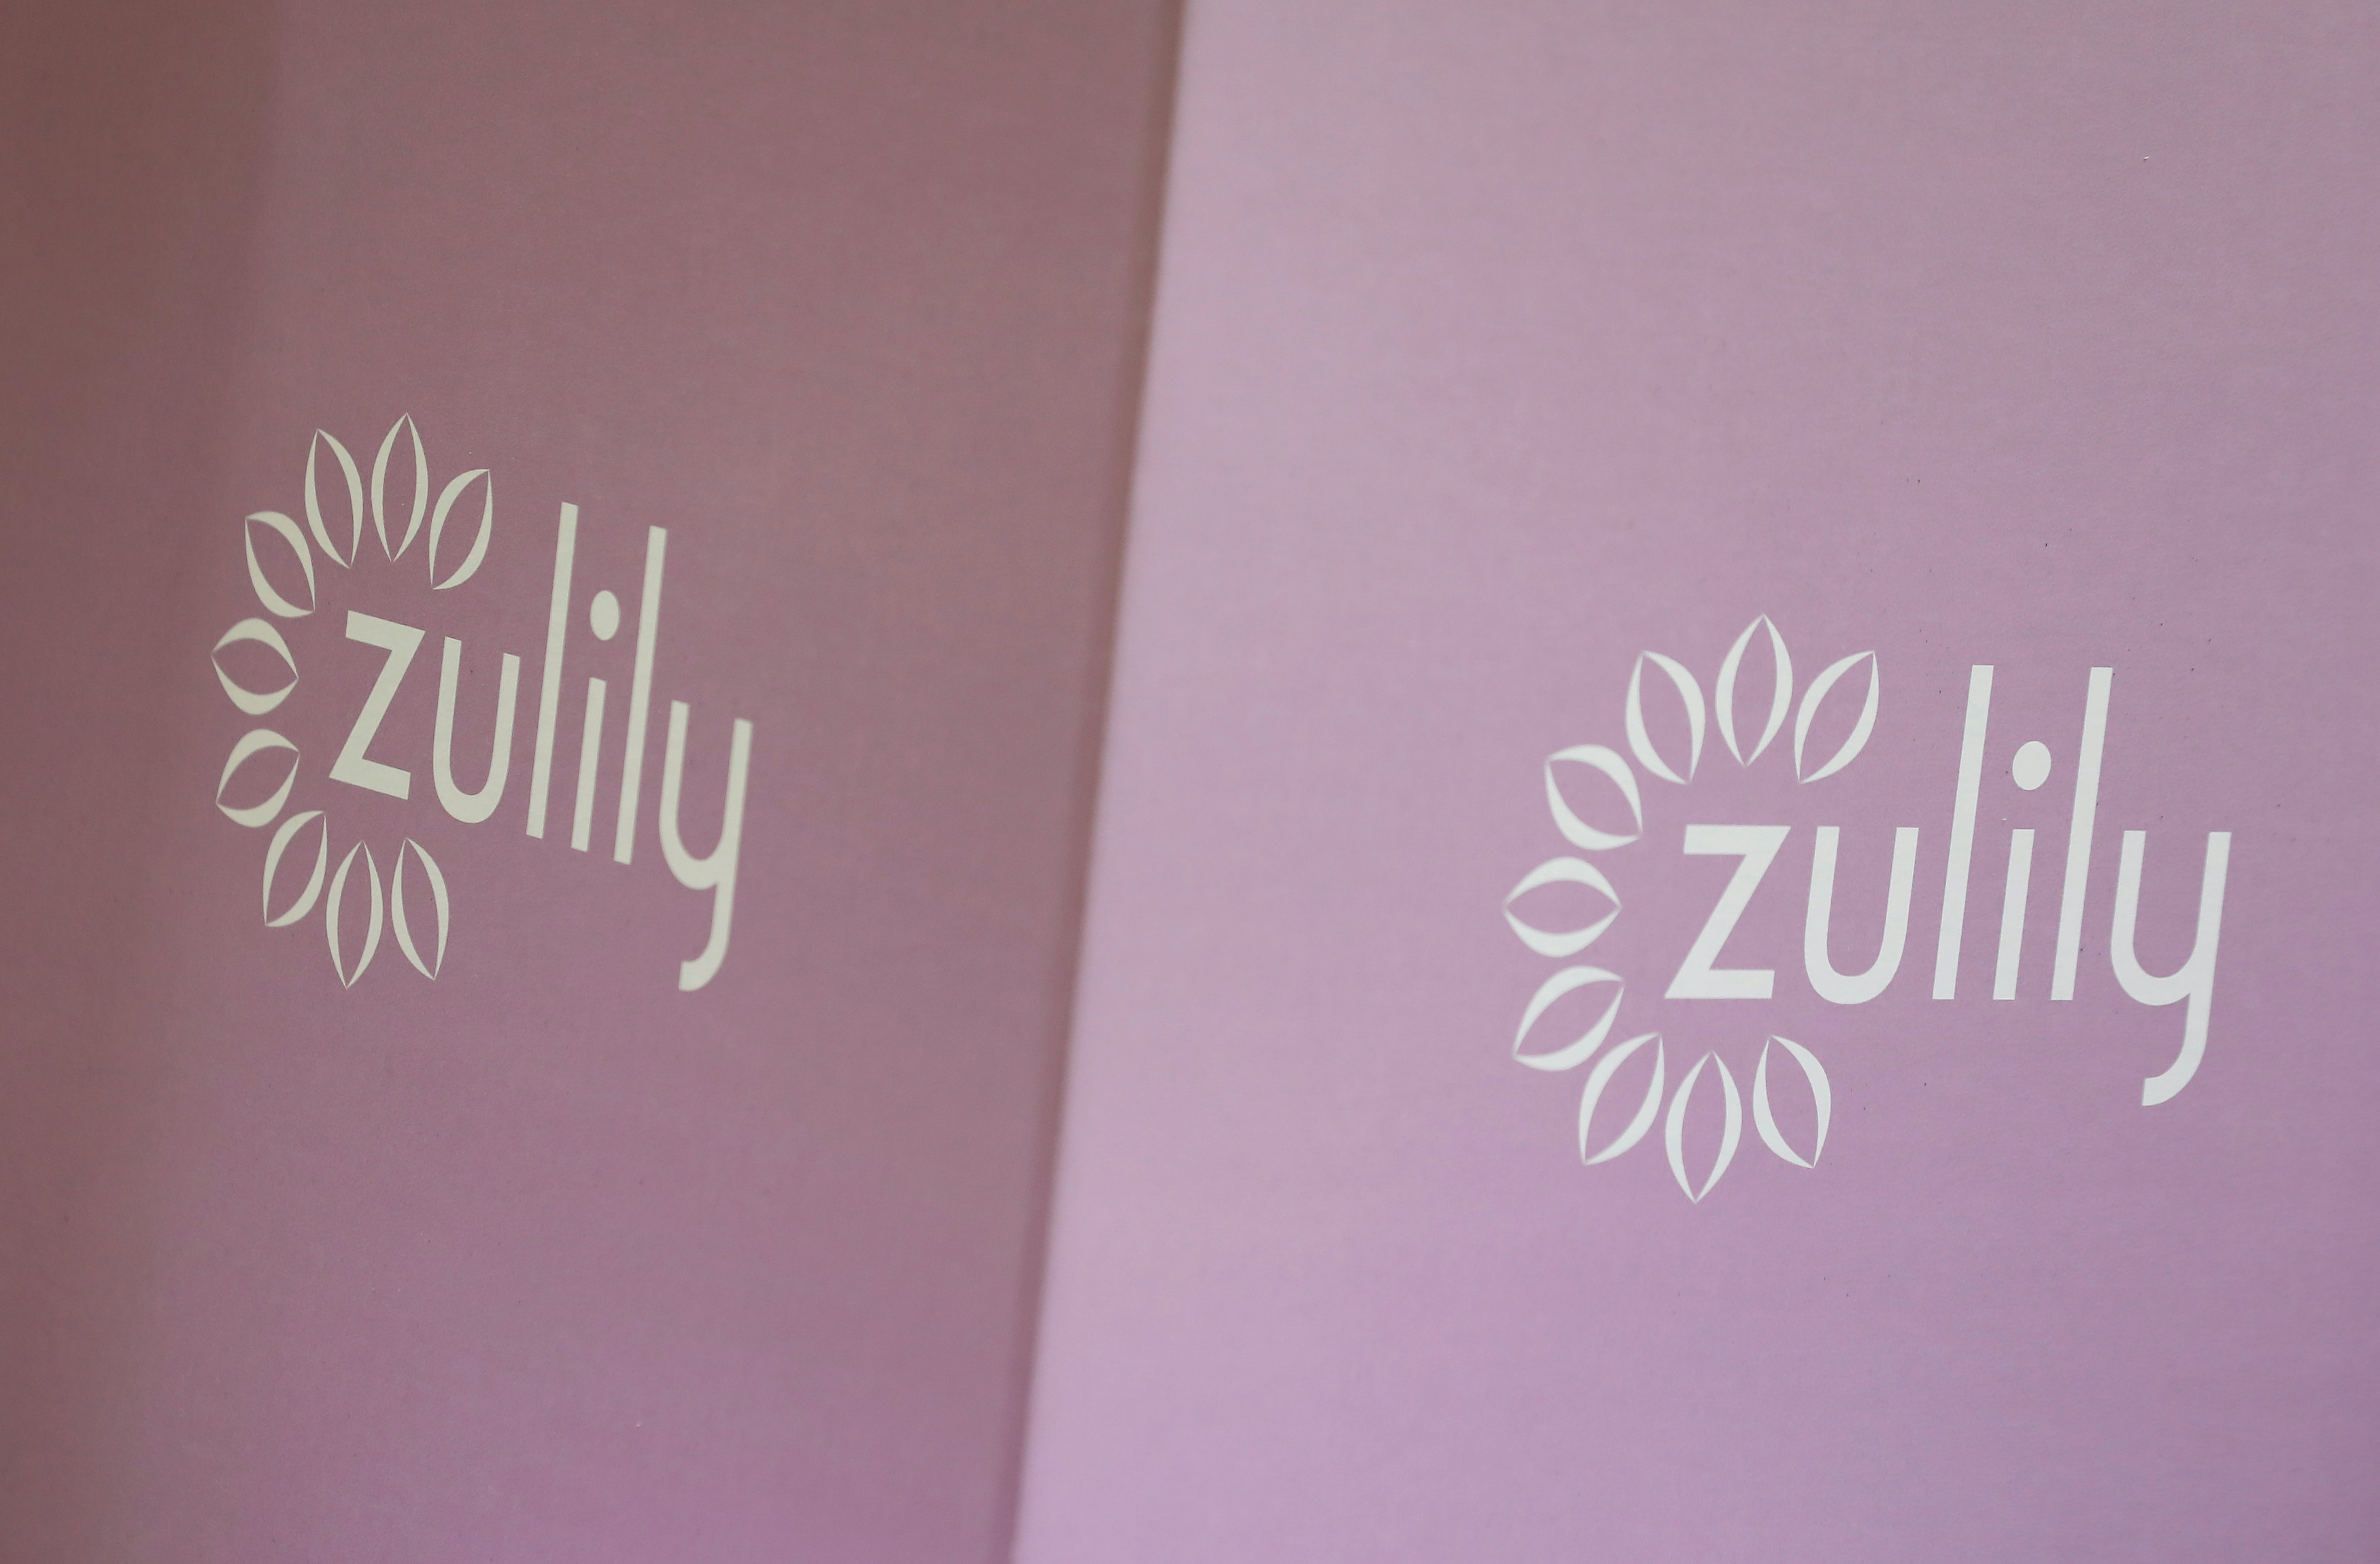 A Zulily logo, which is a subsidiary of QVC parent.